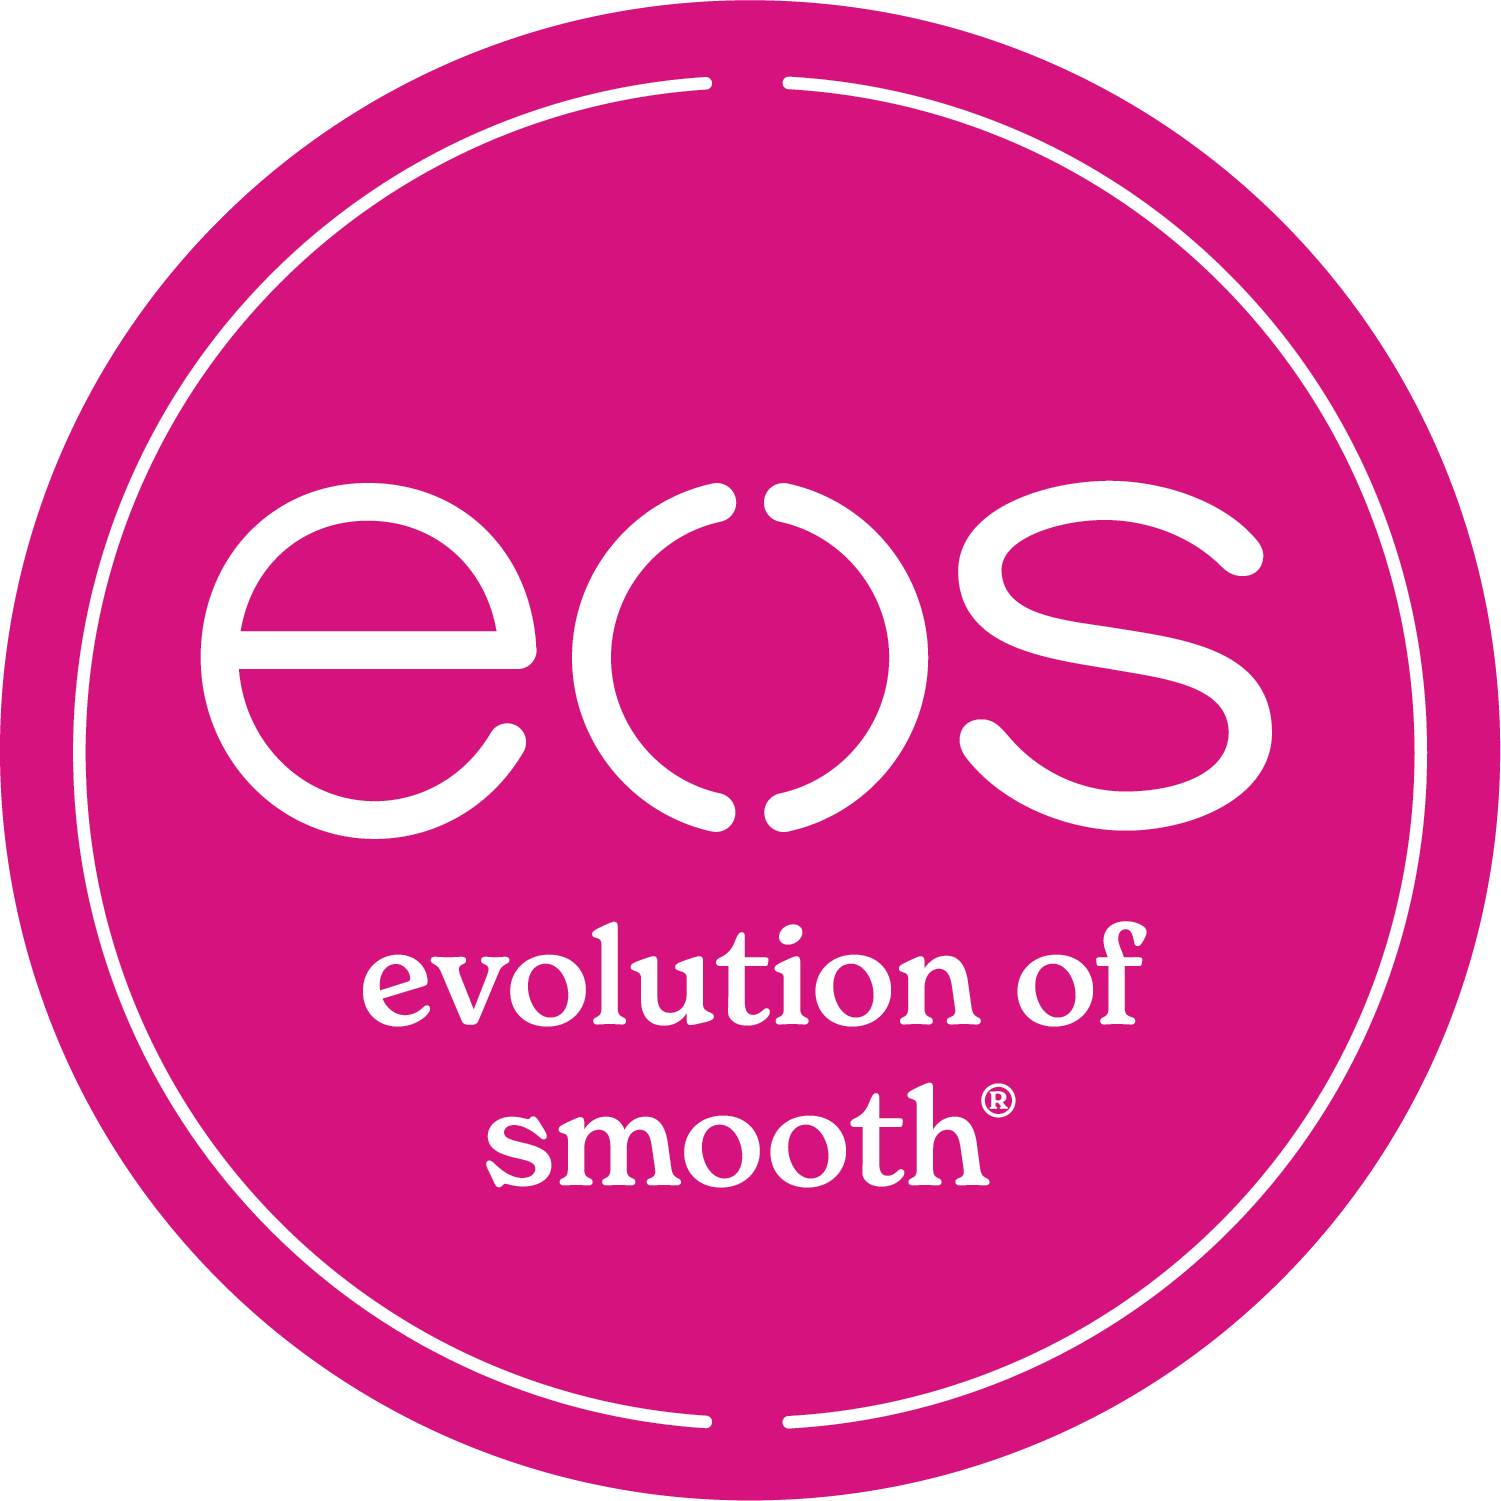 eos - evolution of smooth